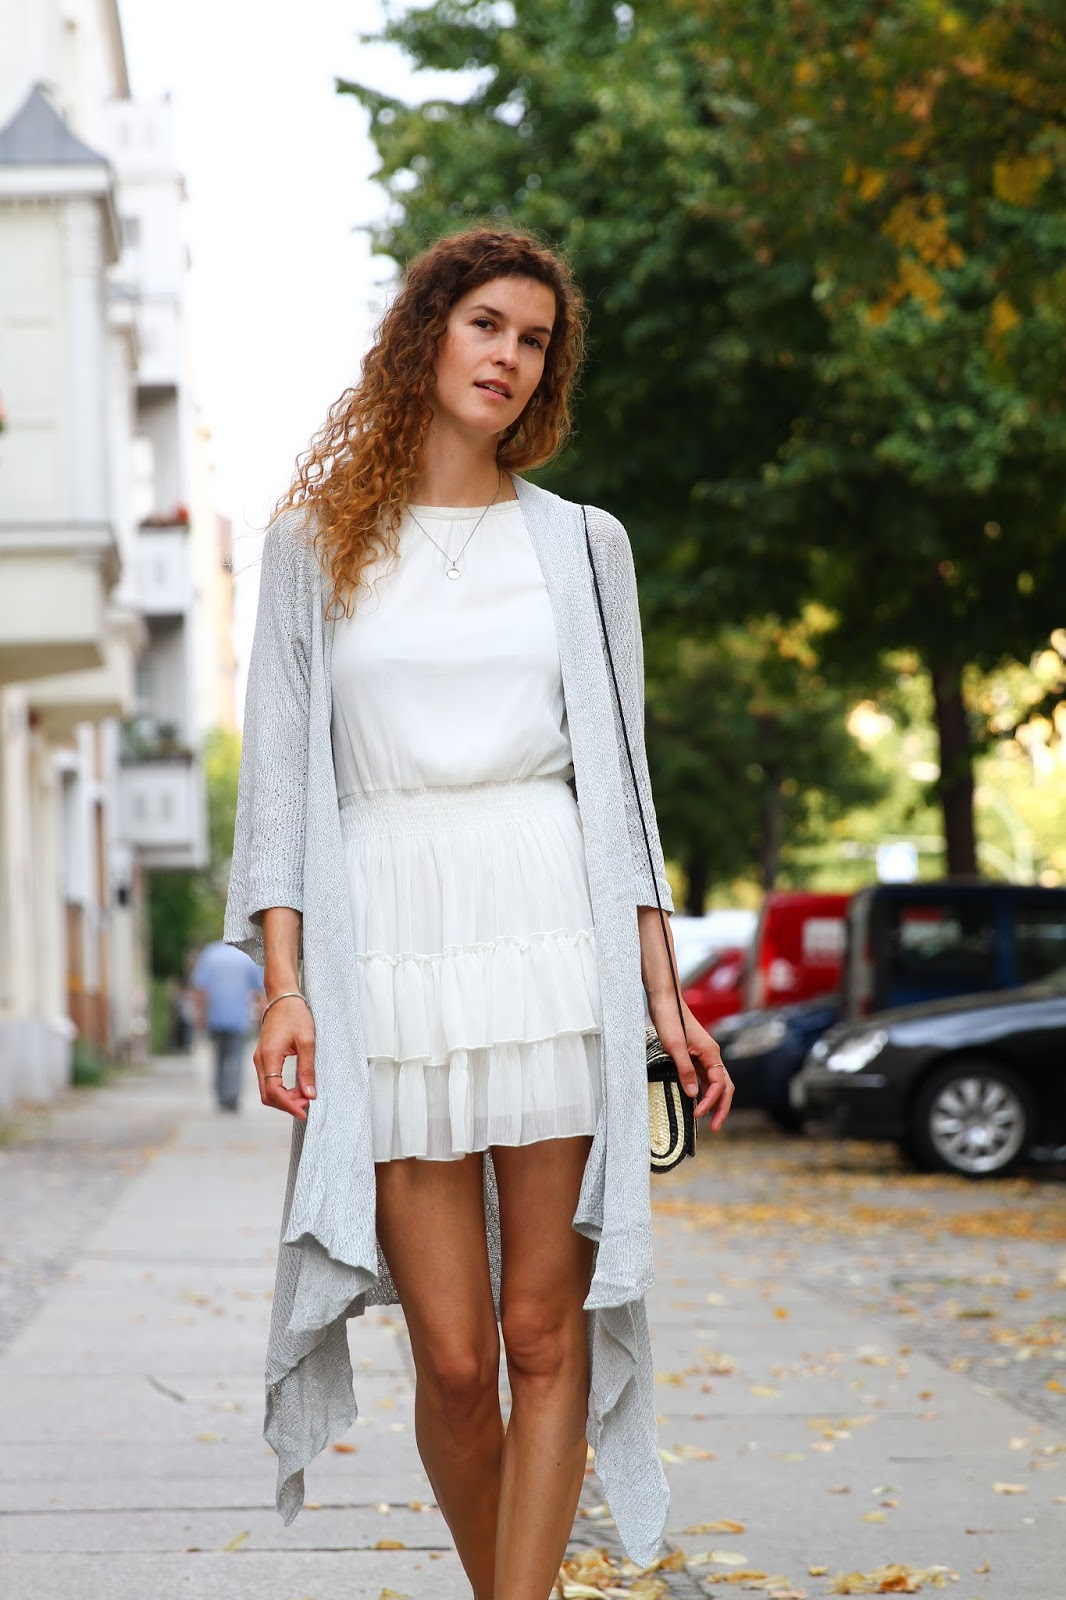 Insider Shopping Tips for Fashion in Berlin